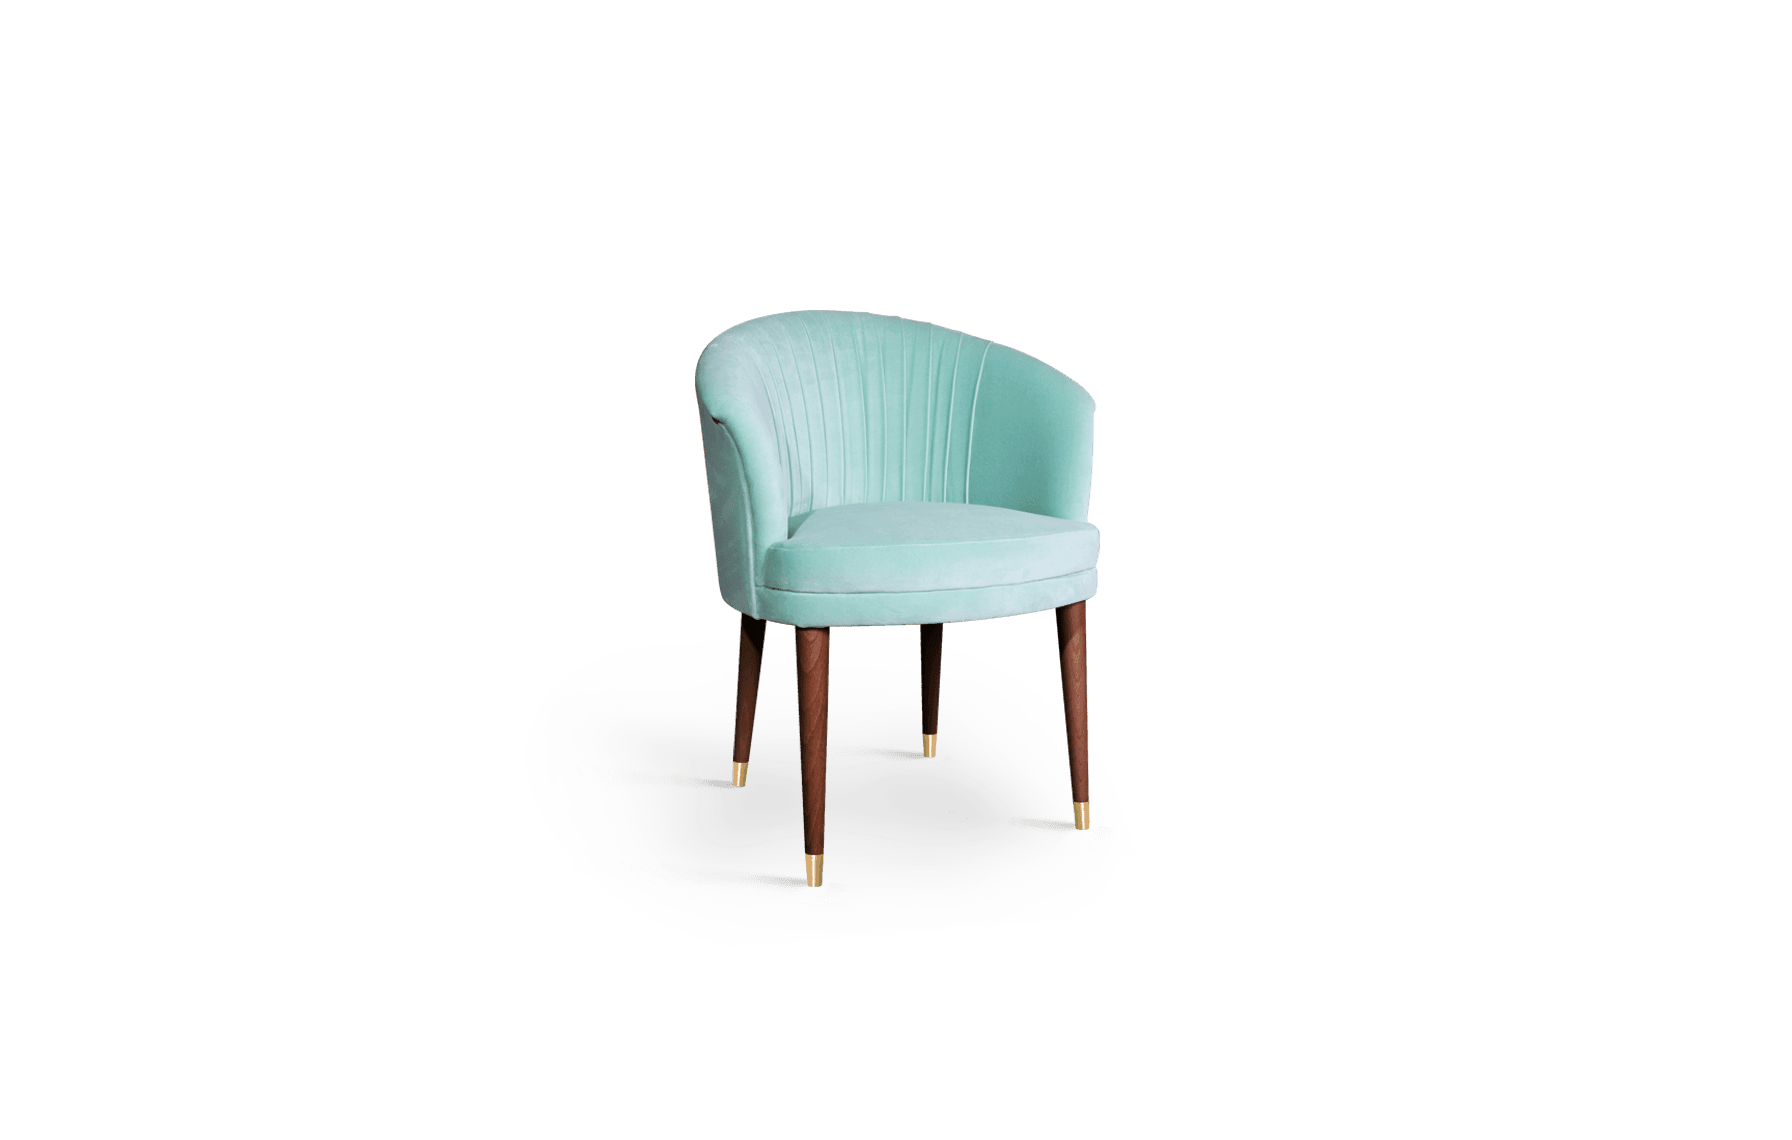 Lupino Mid-Century Modern Dining Chair in green cotton velvet